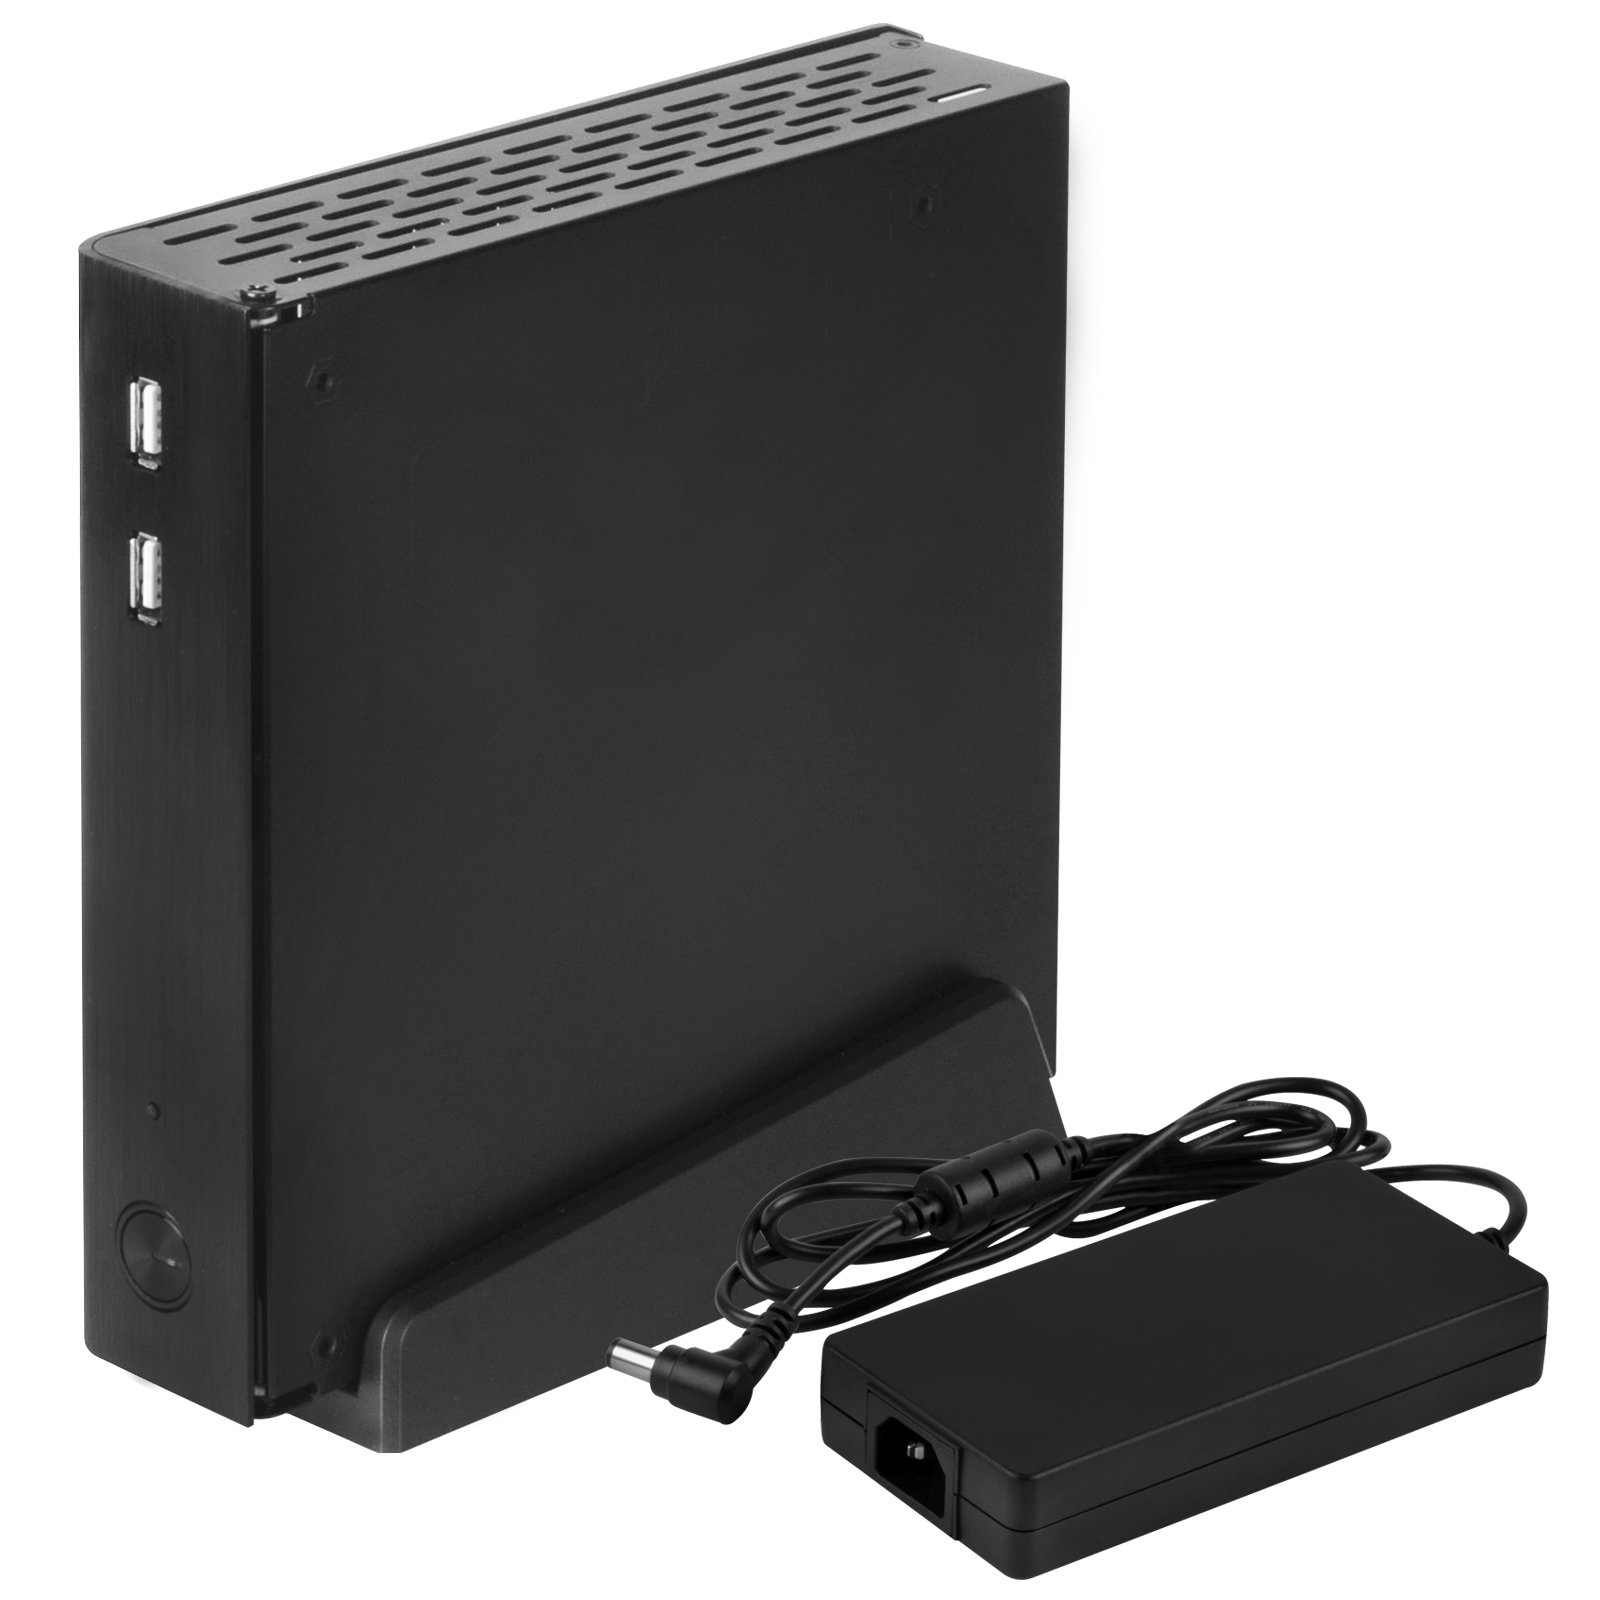 SilverStone Technology Thin-Mini ITX Aluminum Case with 120W External Power Adapter (PT13B-120) by SilverStone Technology (Image #2)